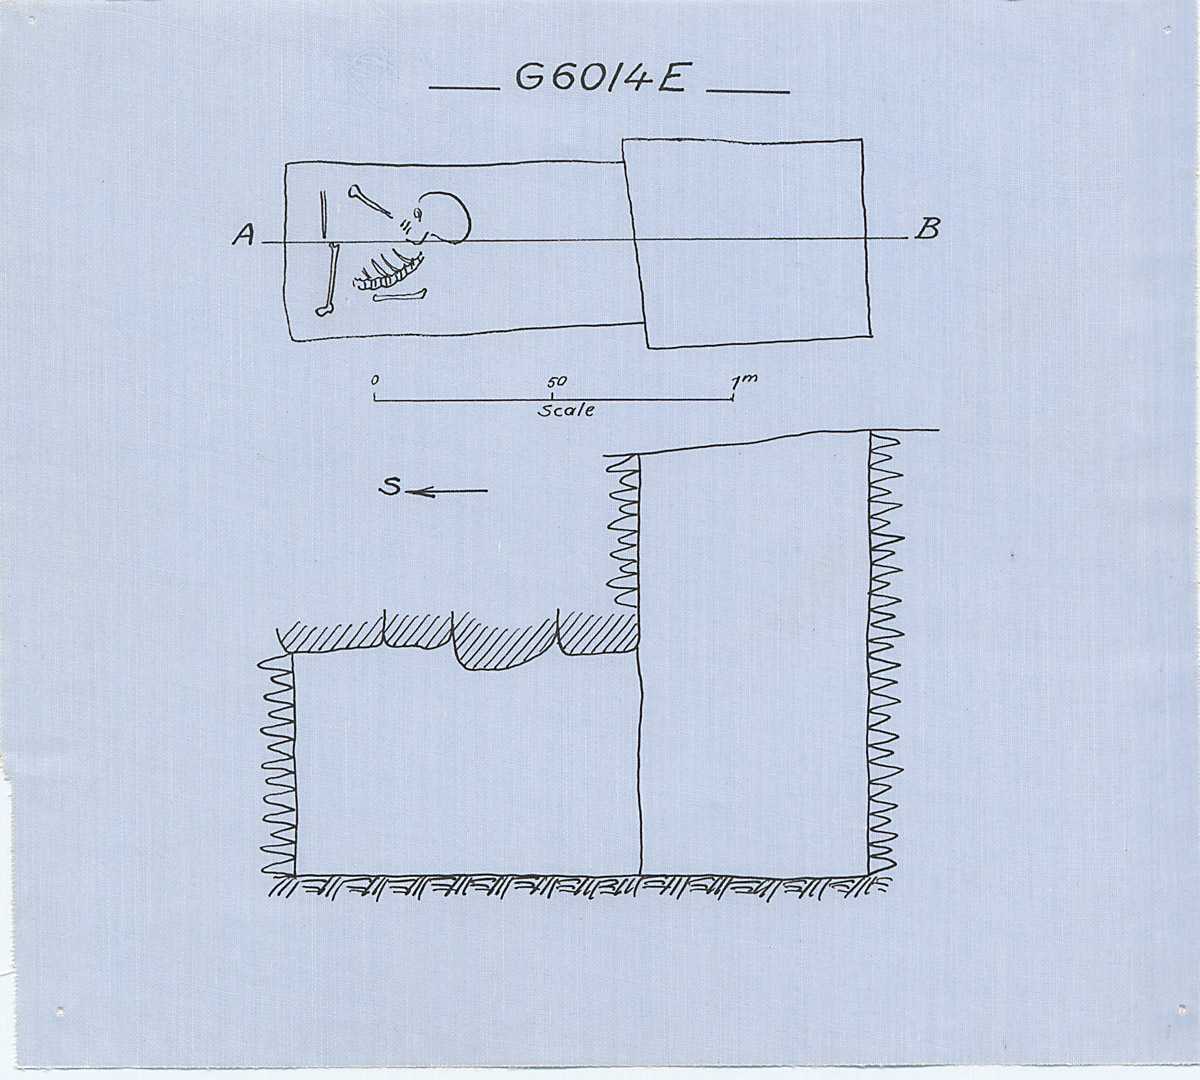 Maps and plans: G 6014, Shaft E